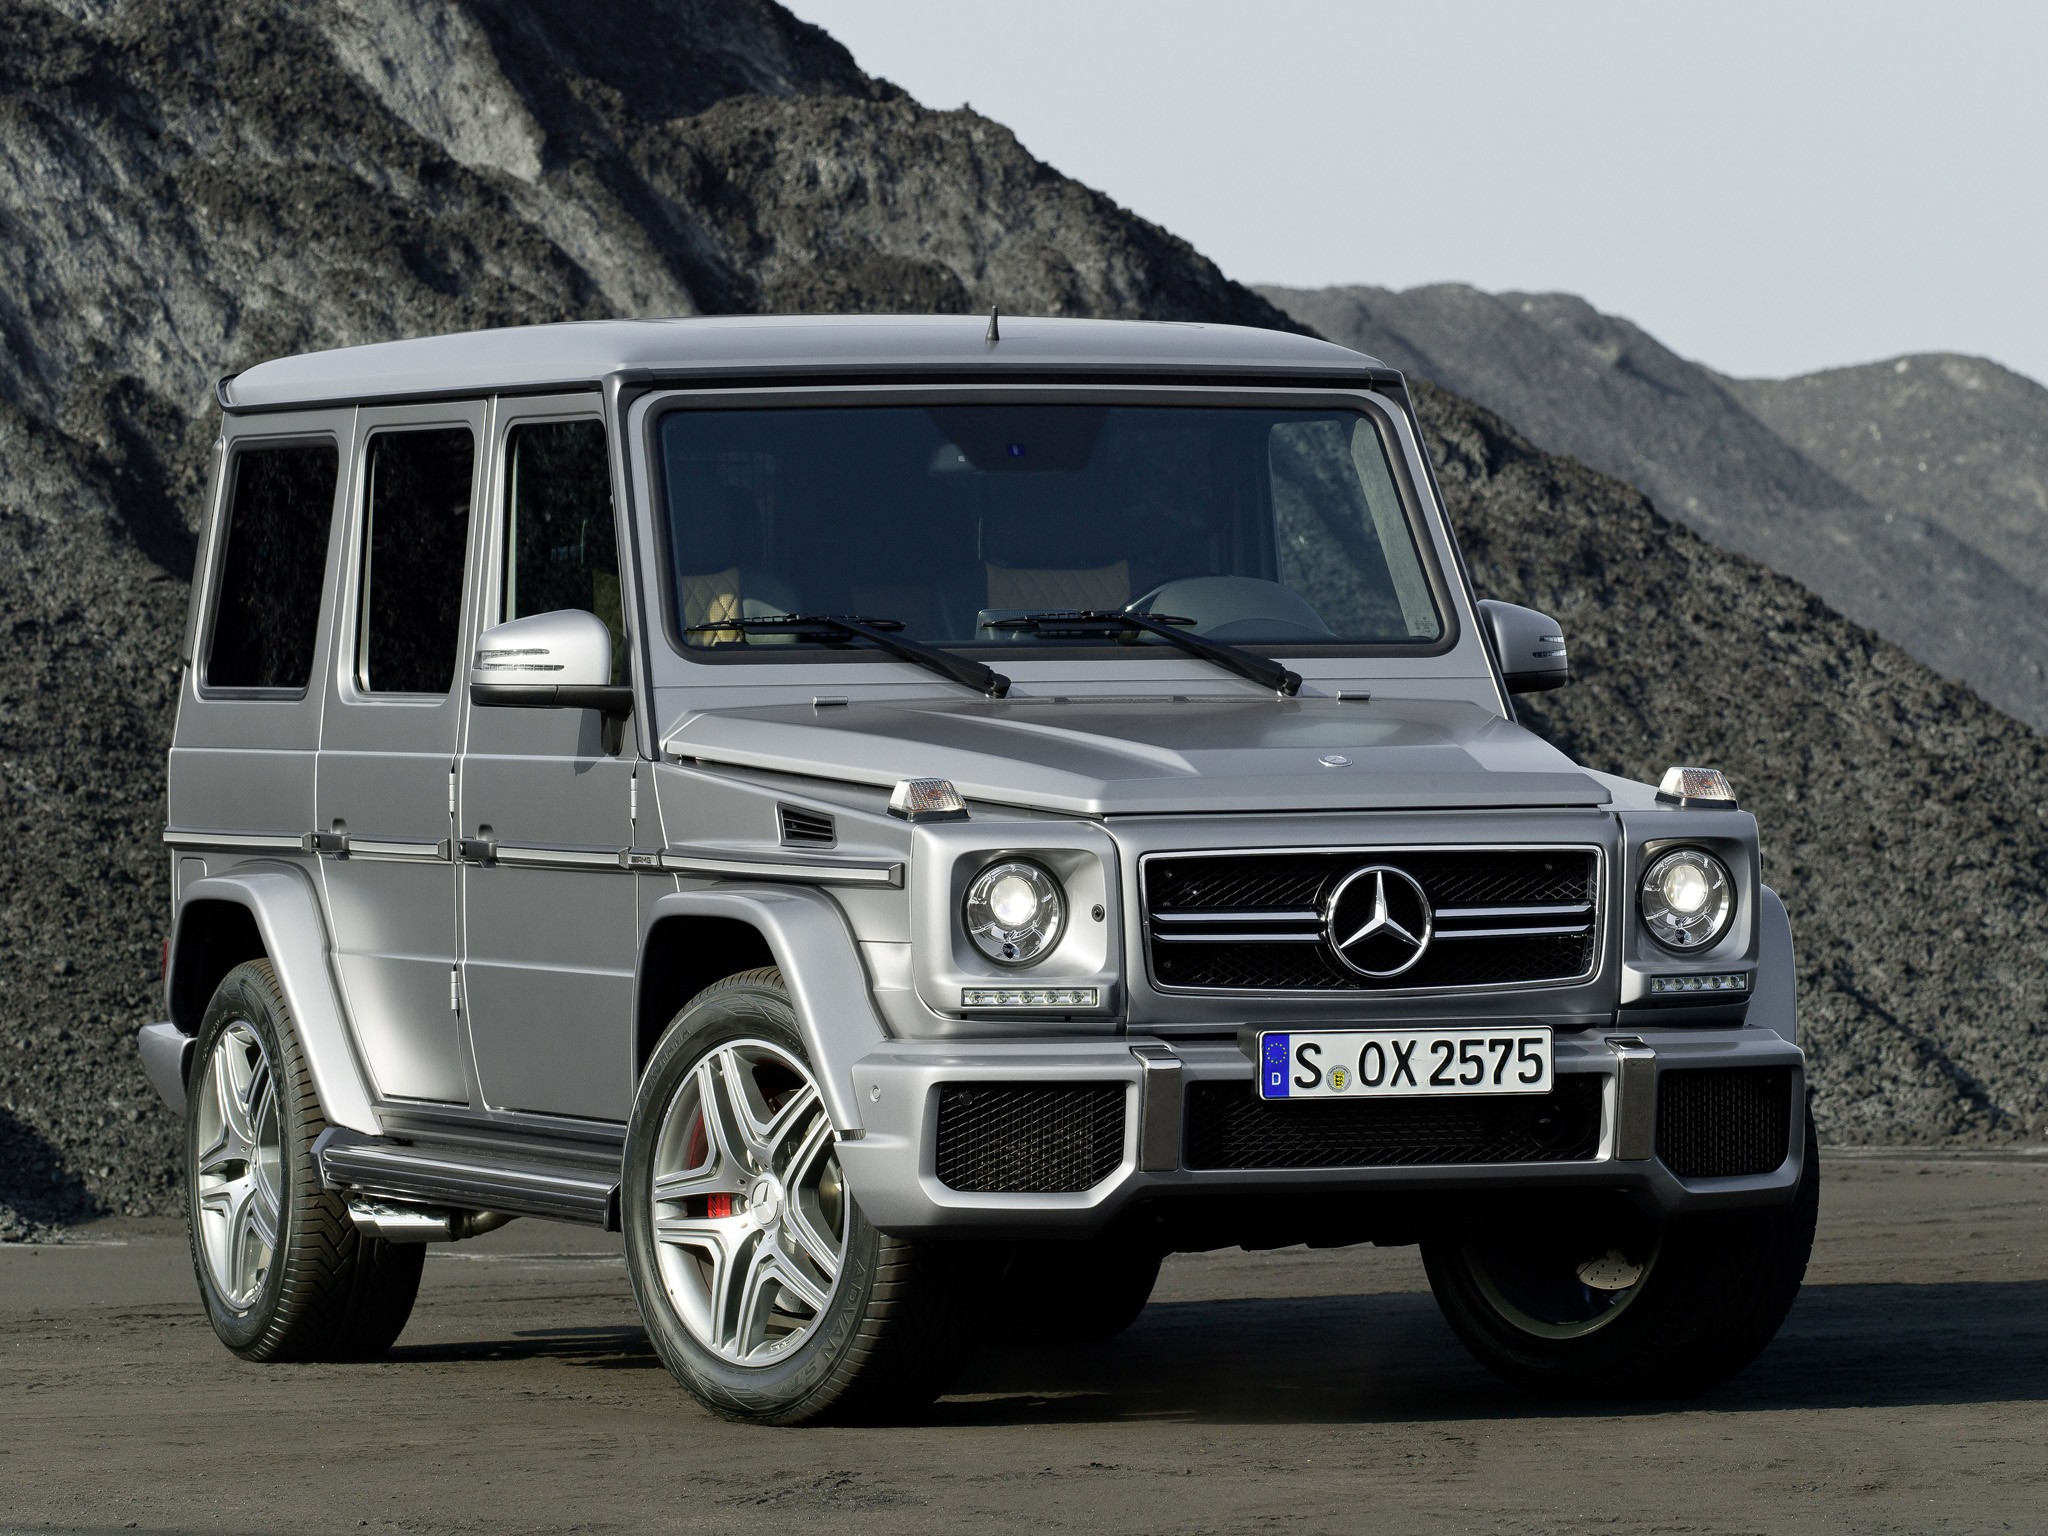 Mercedes-Benz G-klasse AMG I (W463) Restyling 3 2015 - now SUV 5 door #3